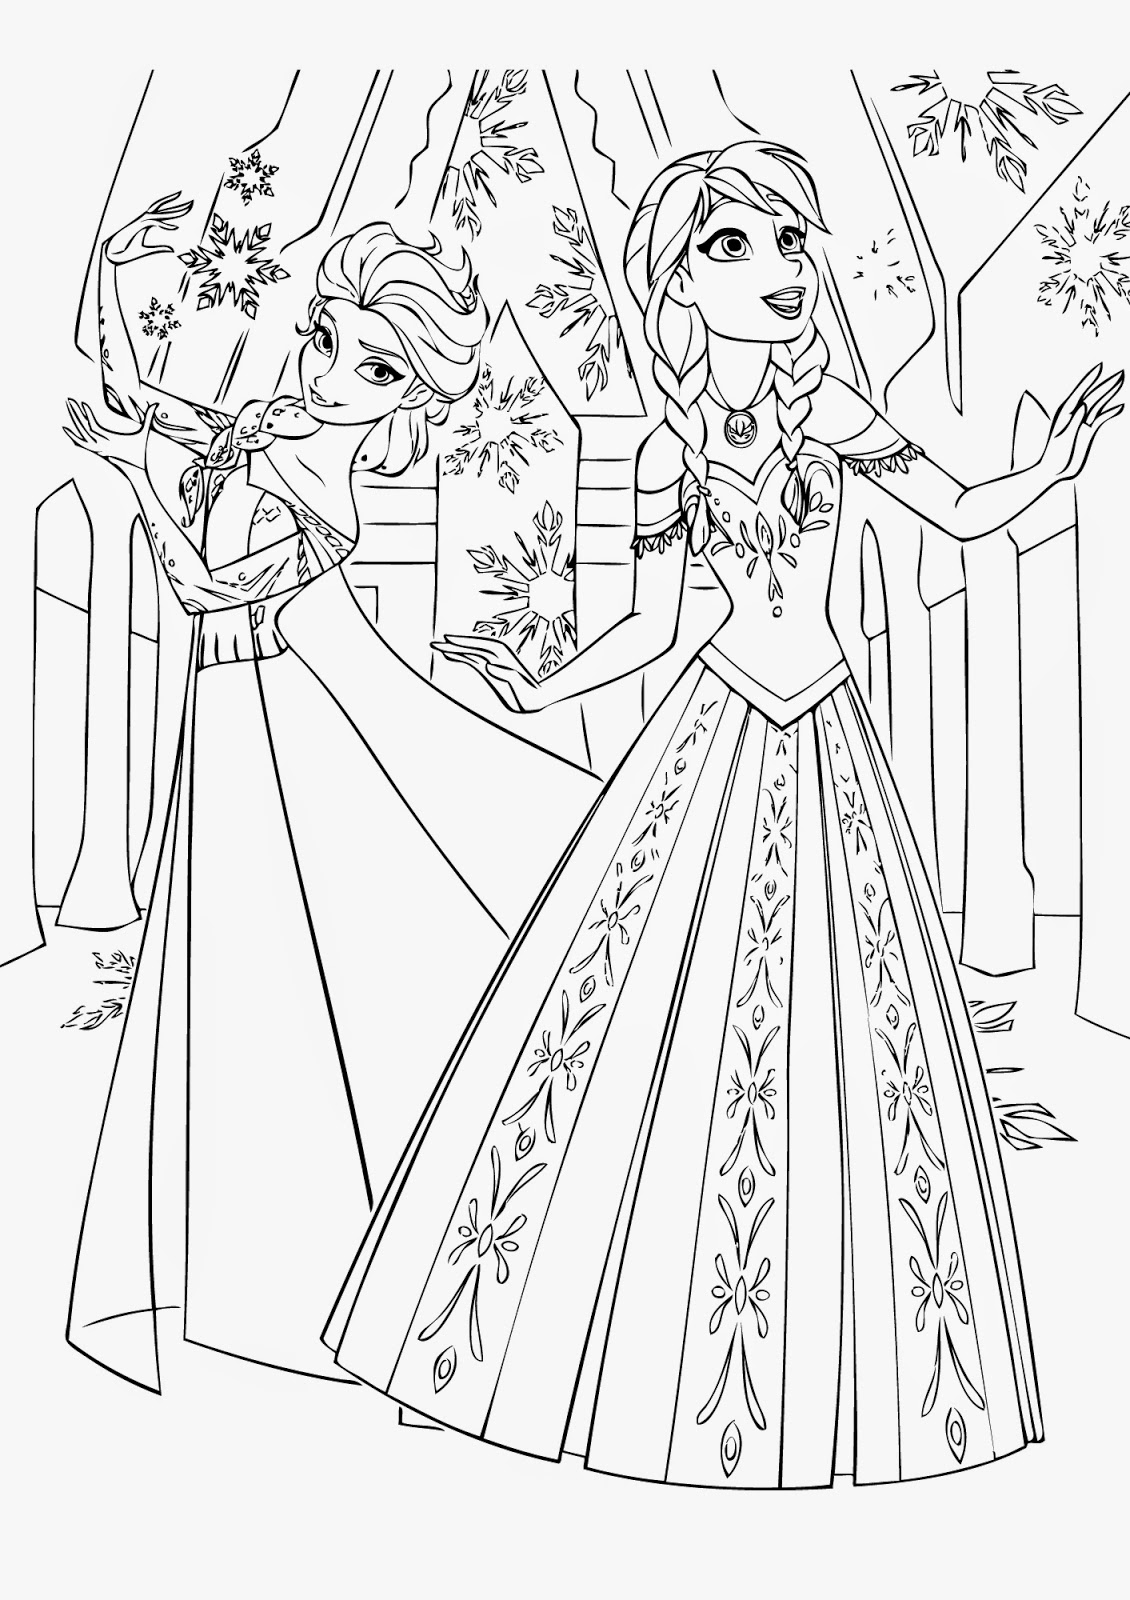 frozen colouring in pictures frozen coloring pages 2 disneyclipscom colouring frozen pictures in